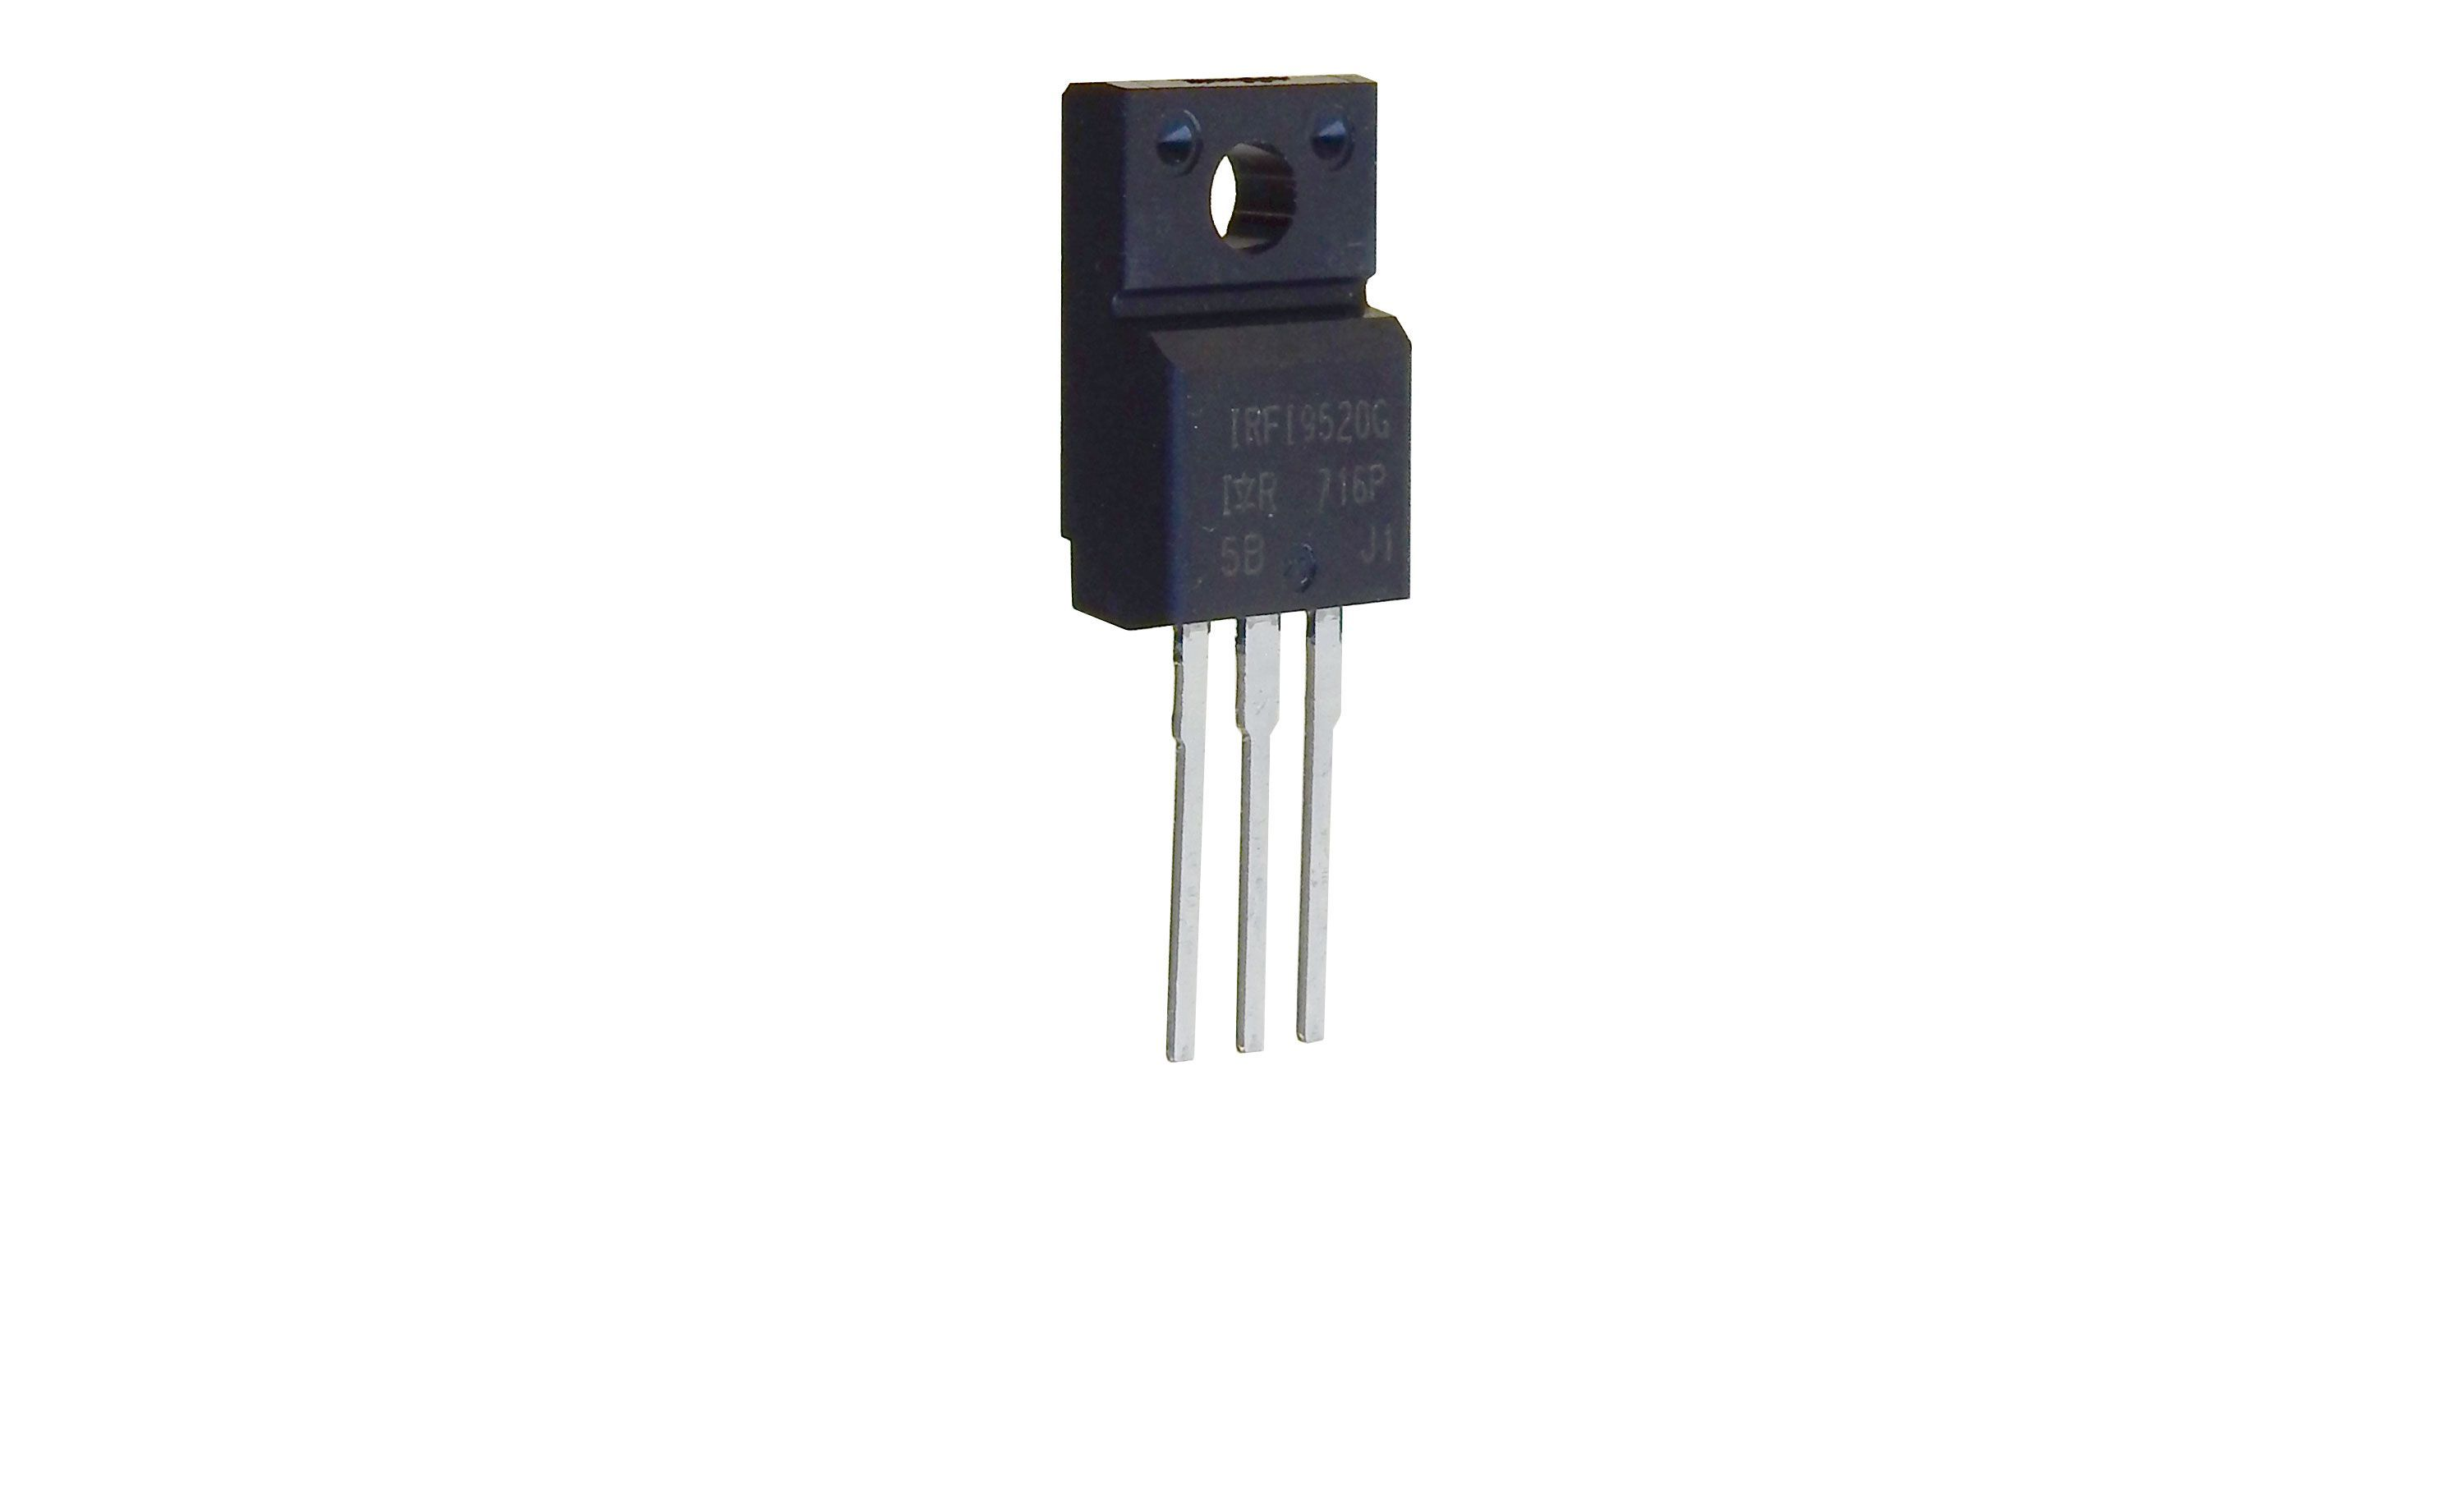 IRFI9520G P-CHANNEL MOSFET